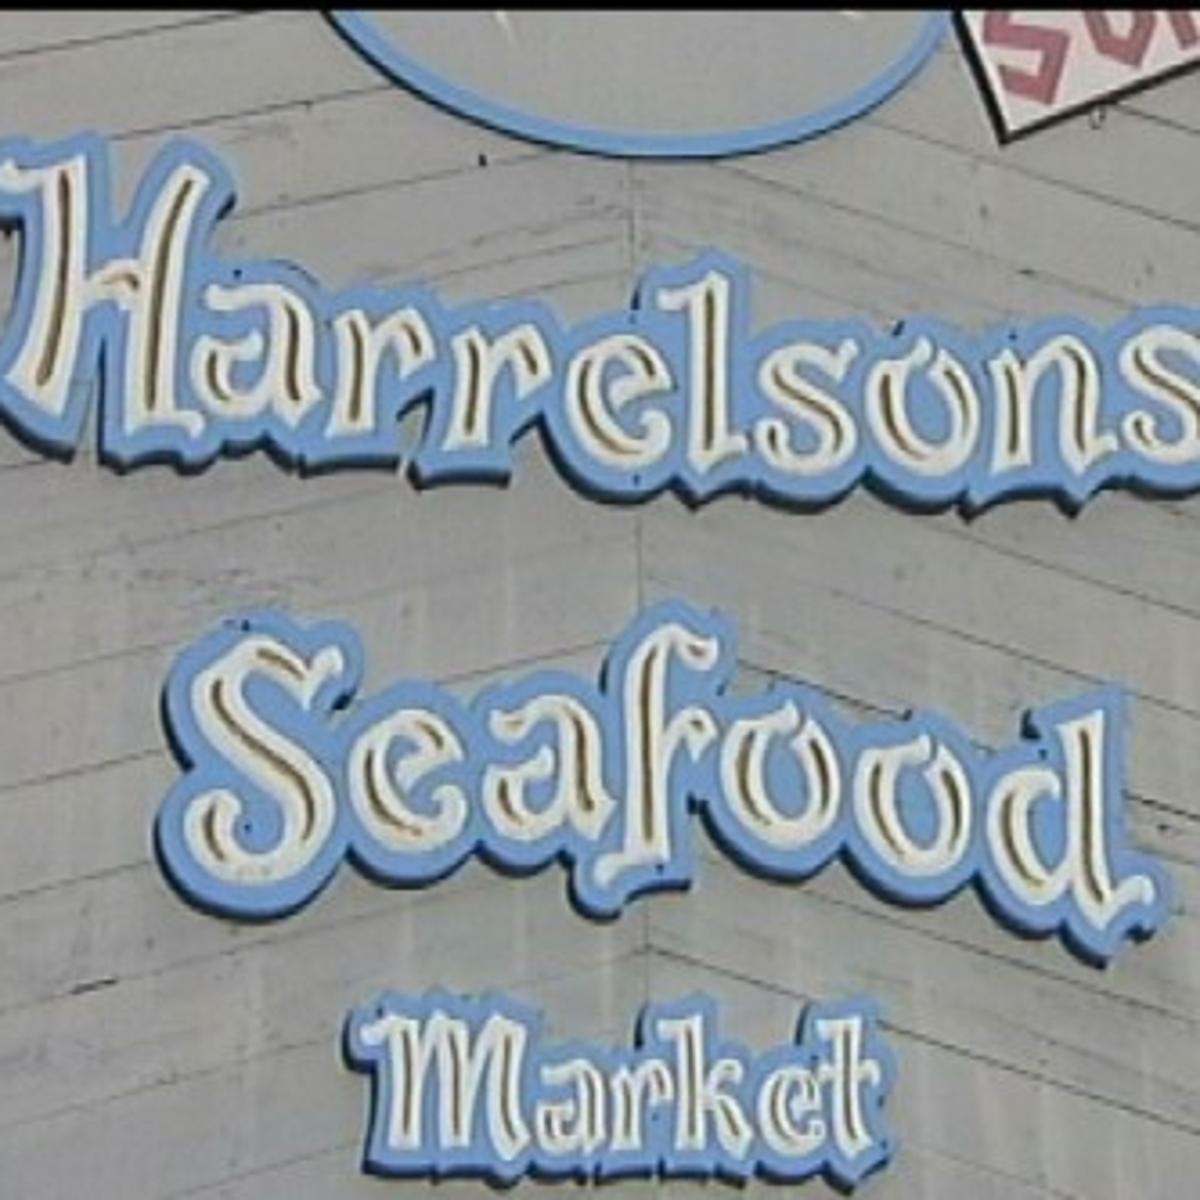 Seafood Market in Murrells Inlet ...